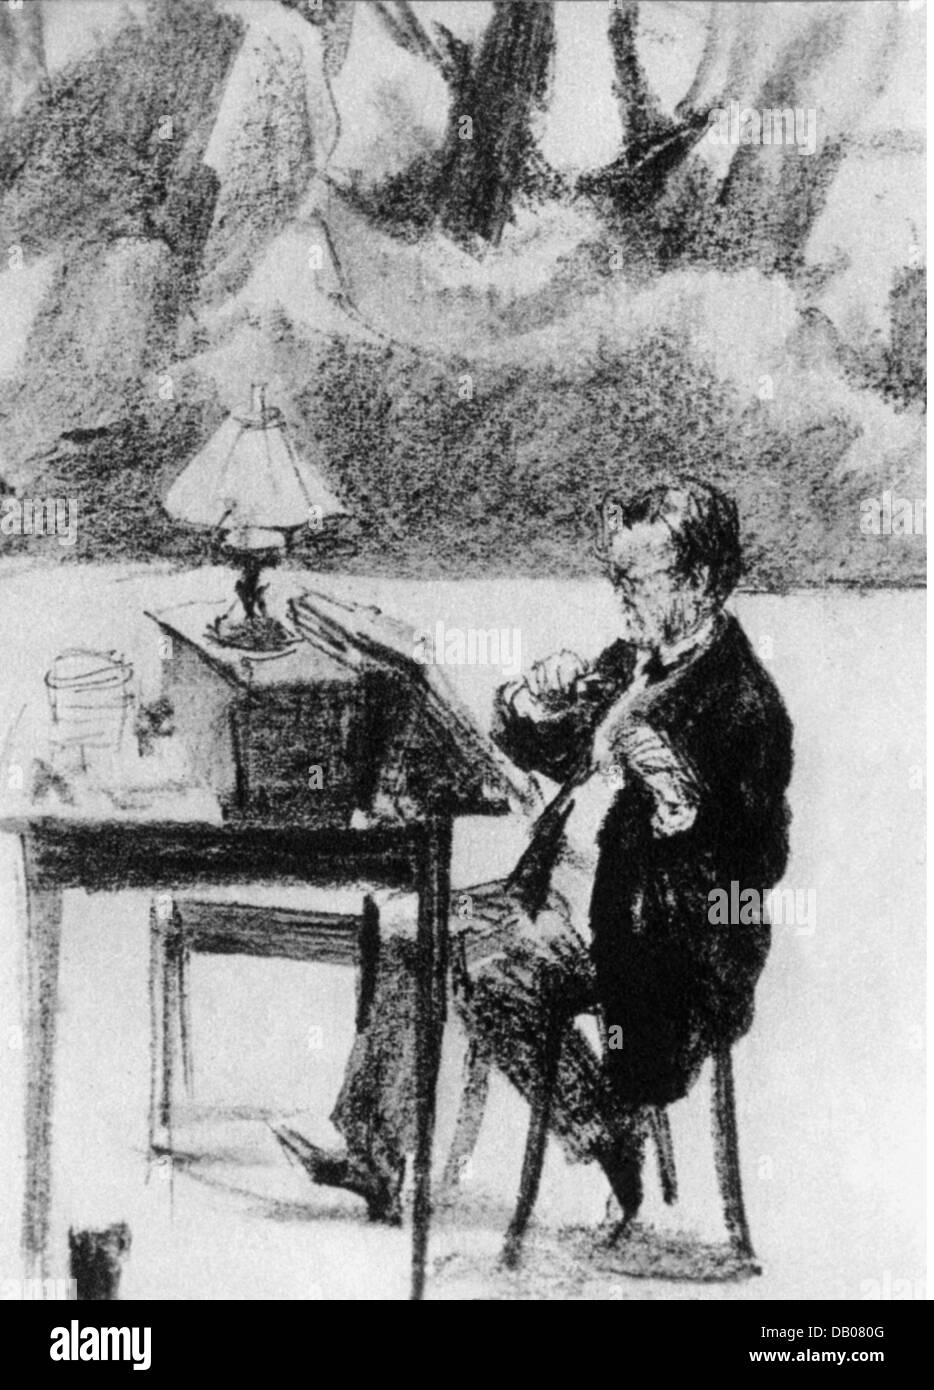 Wagner, Richard, 22.5.1813 - 13.2.1883, German composer, directing the rehearsals on the stage of the Bayreuth Festspielhaus, Stock Photo